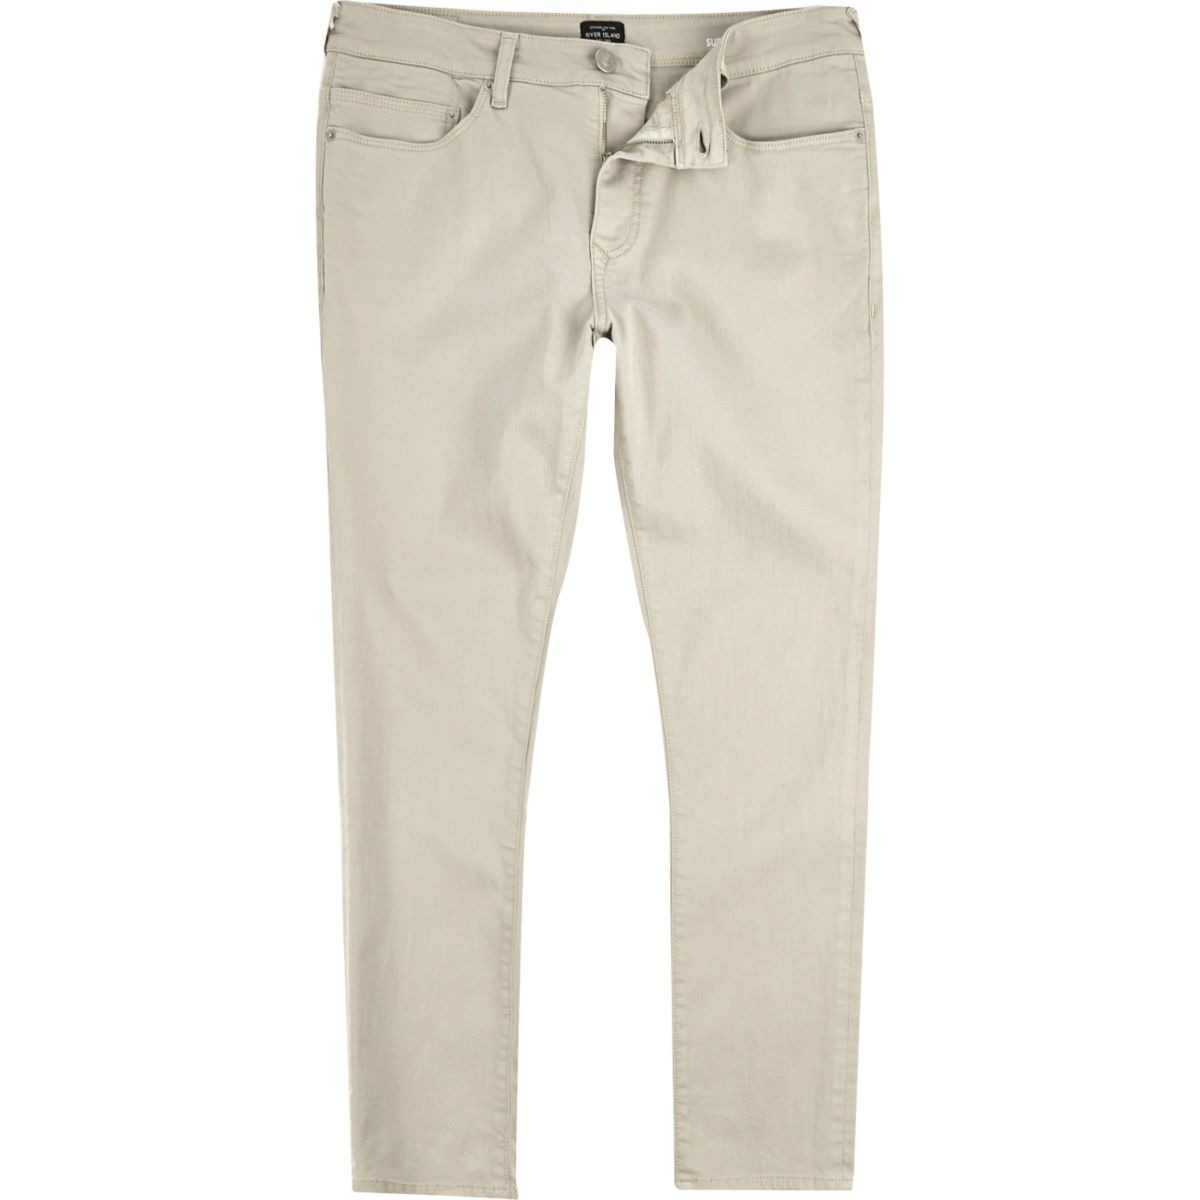 Light brown Danny super skinny jeans